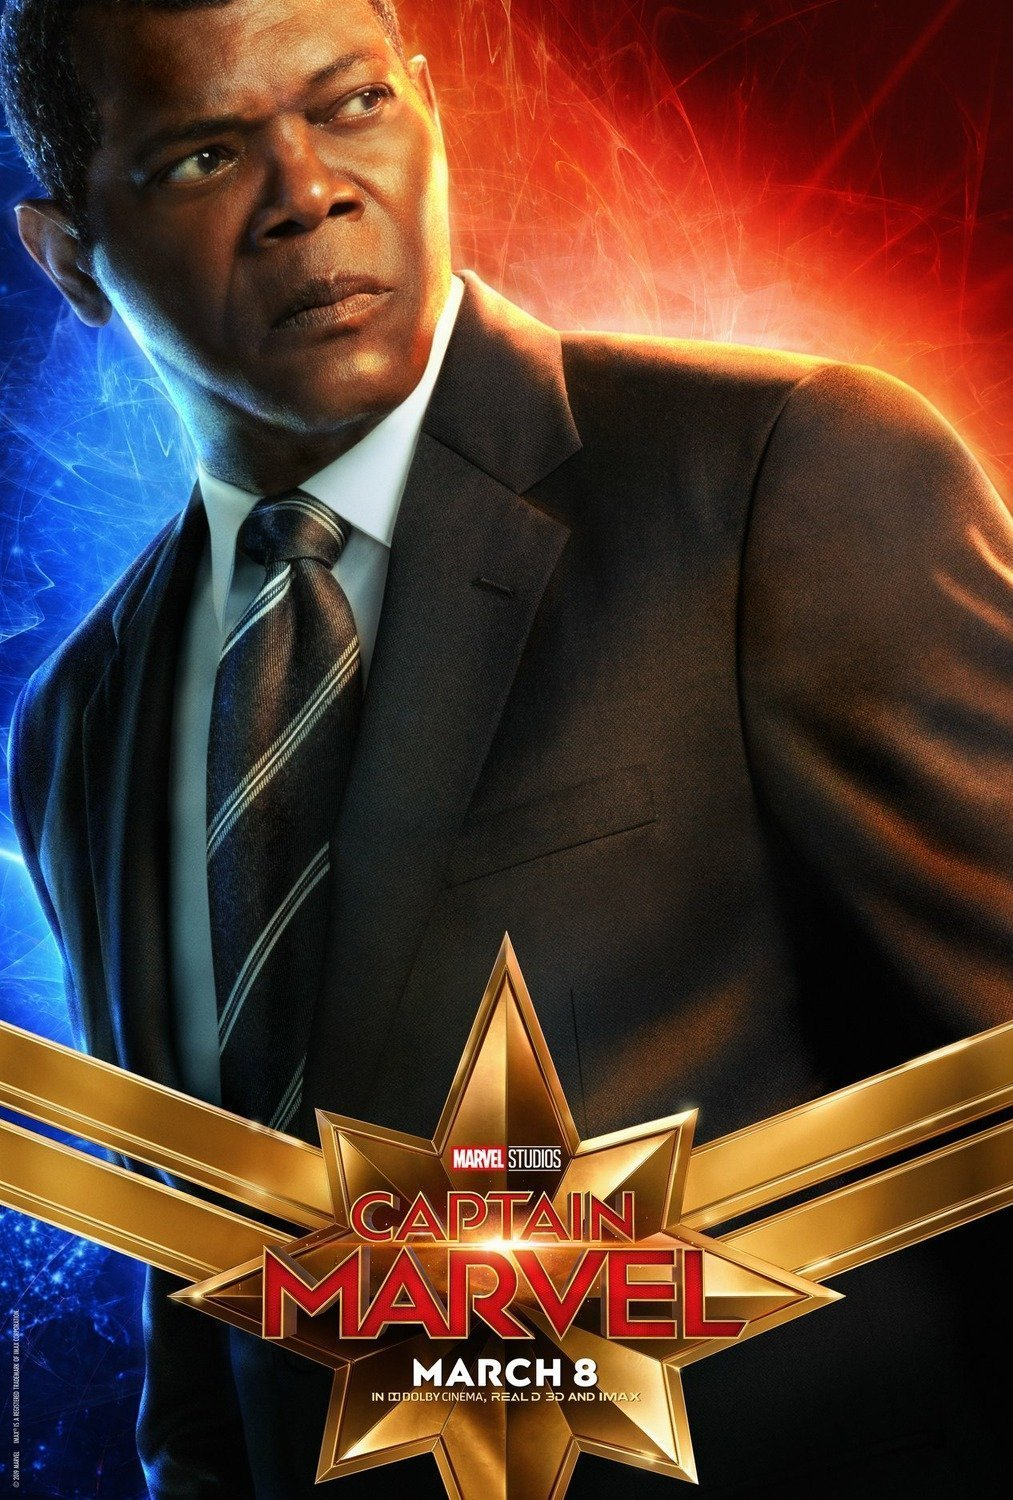 Poster du film Captain Marvel avec Samuel L. Jackson (Nick Fury)